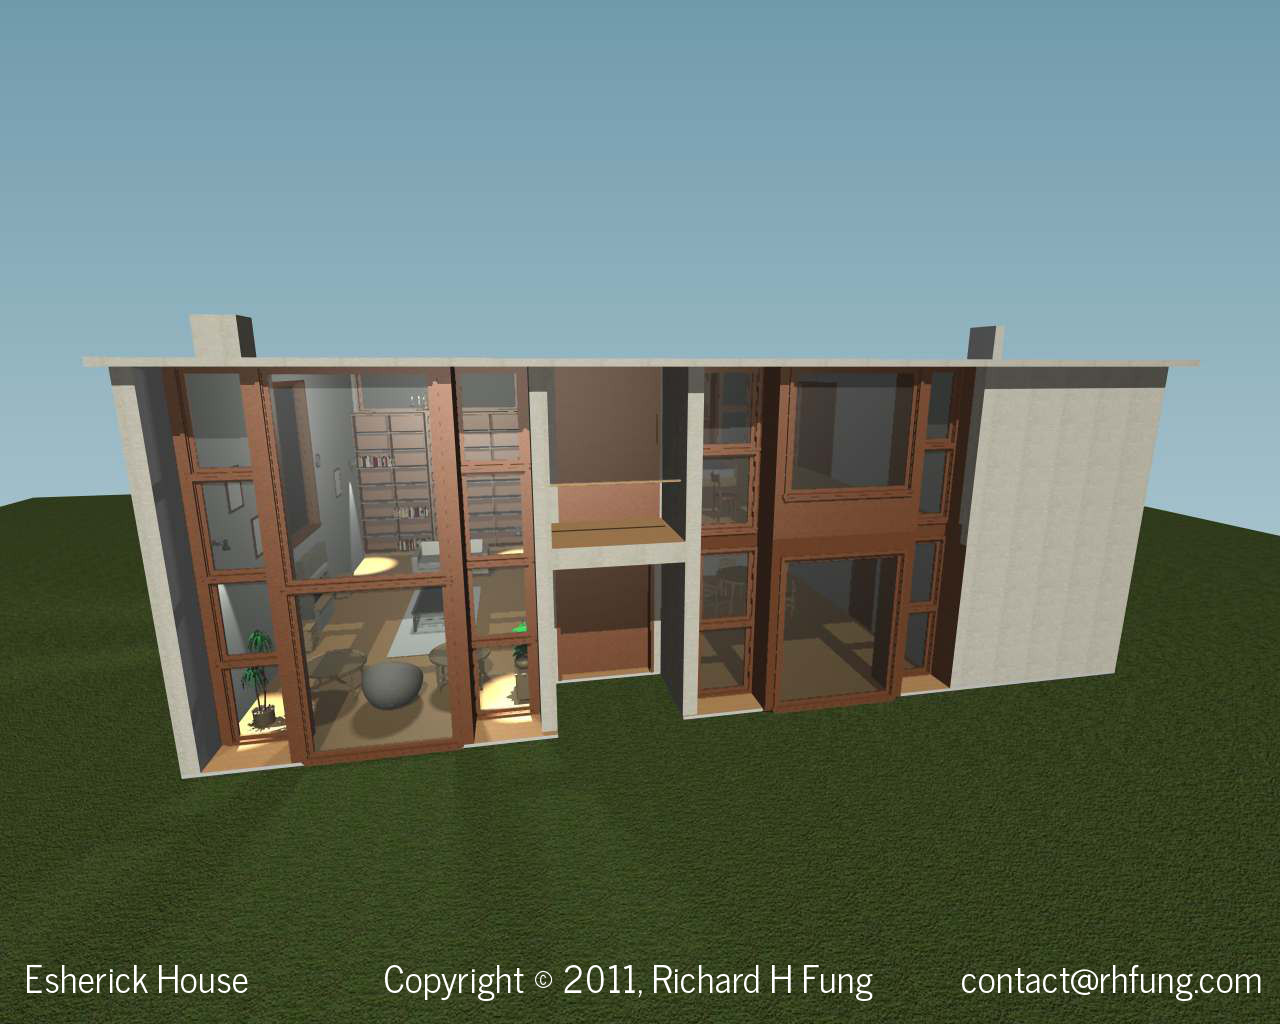 Esherick House Back Of House In 3D Rendering